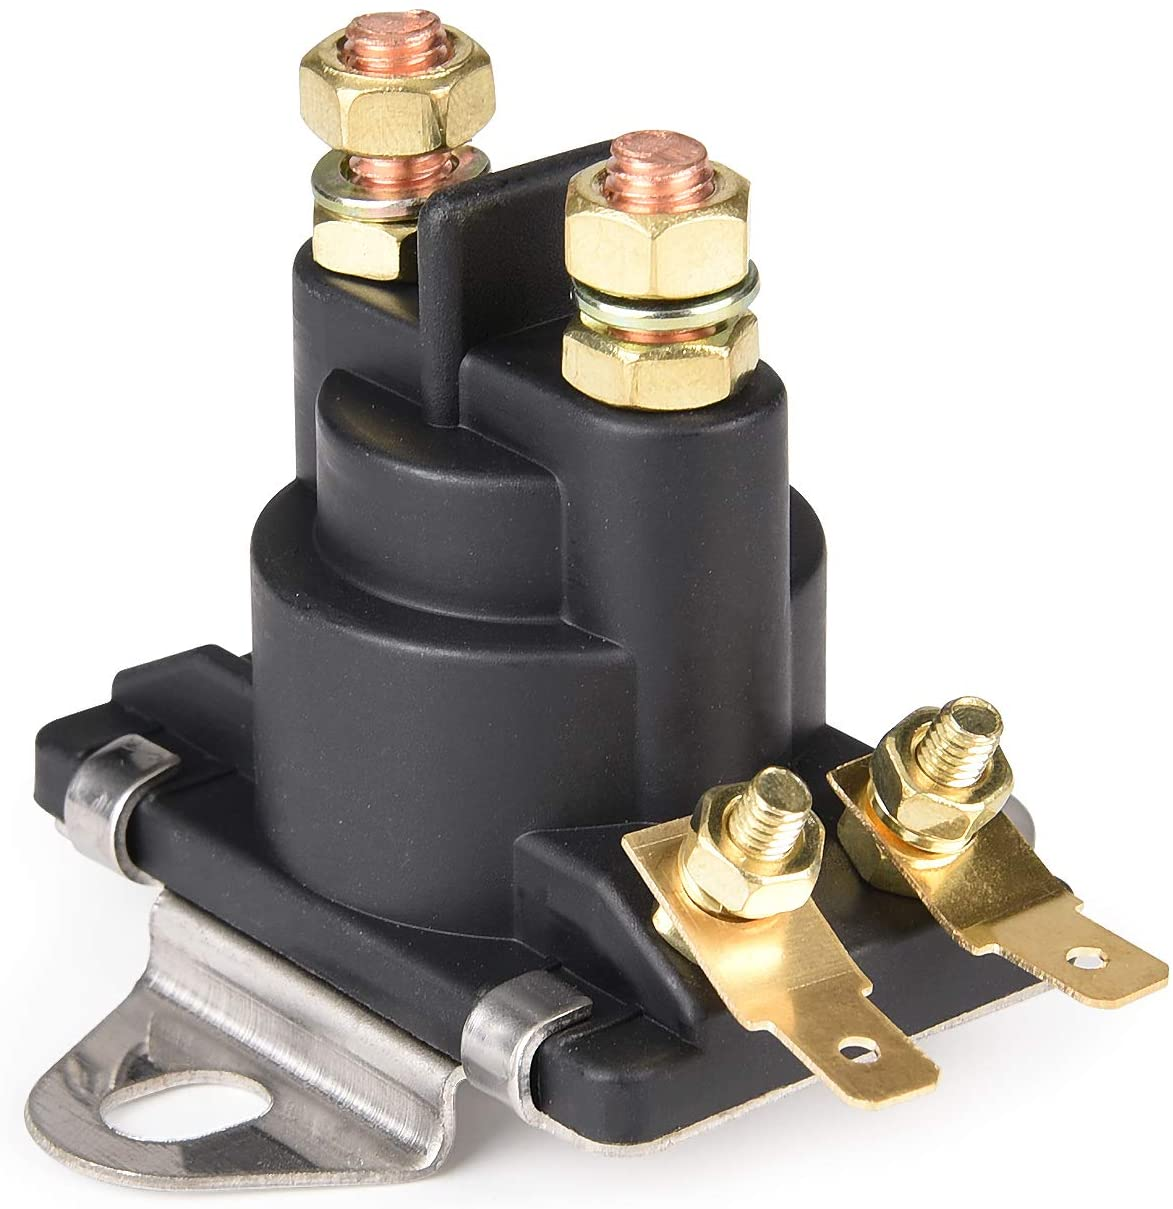 MaySpare 12V Power Super special price Large-scale sale Trim Solenoid Mercury For Outb Switch Mariner